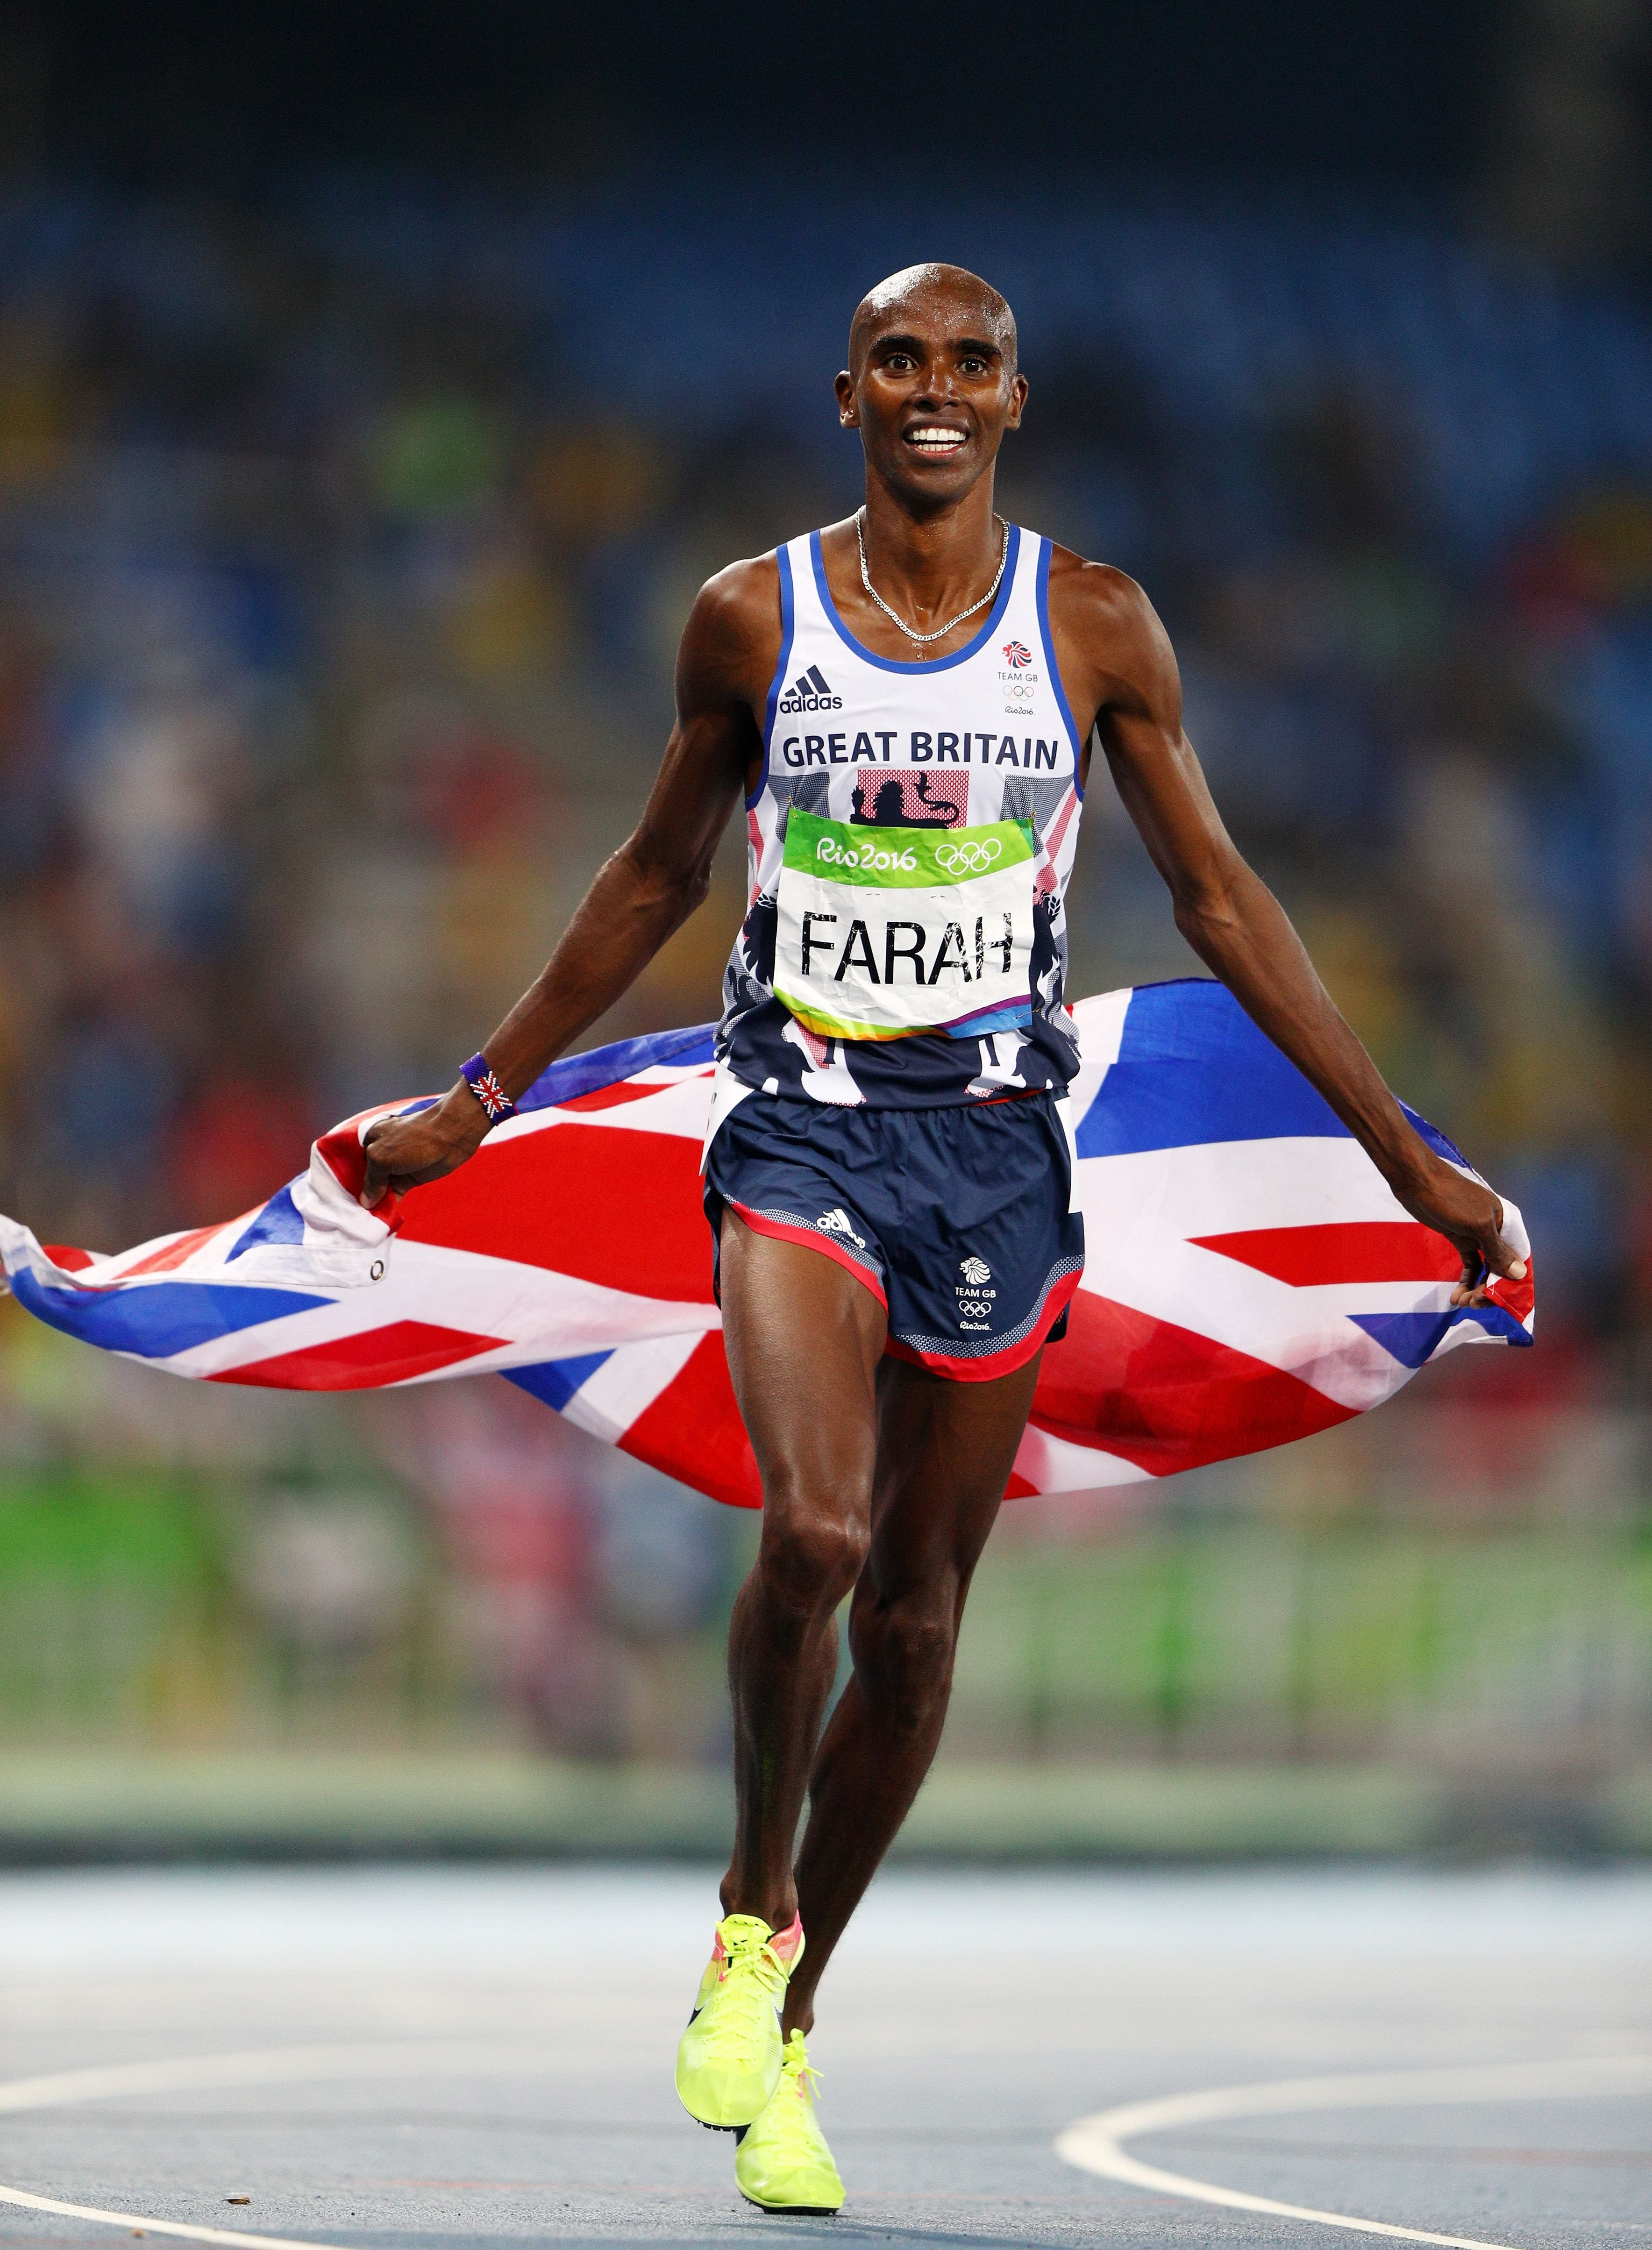 Mohamed Farah of Great Britain after winning gold in the Men's 5000 meter Final of the 2016 Olympic Games on August 20, 2016 in Rio de Janeiro, Brazil | Photo: Getty Images